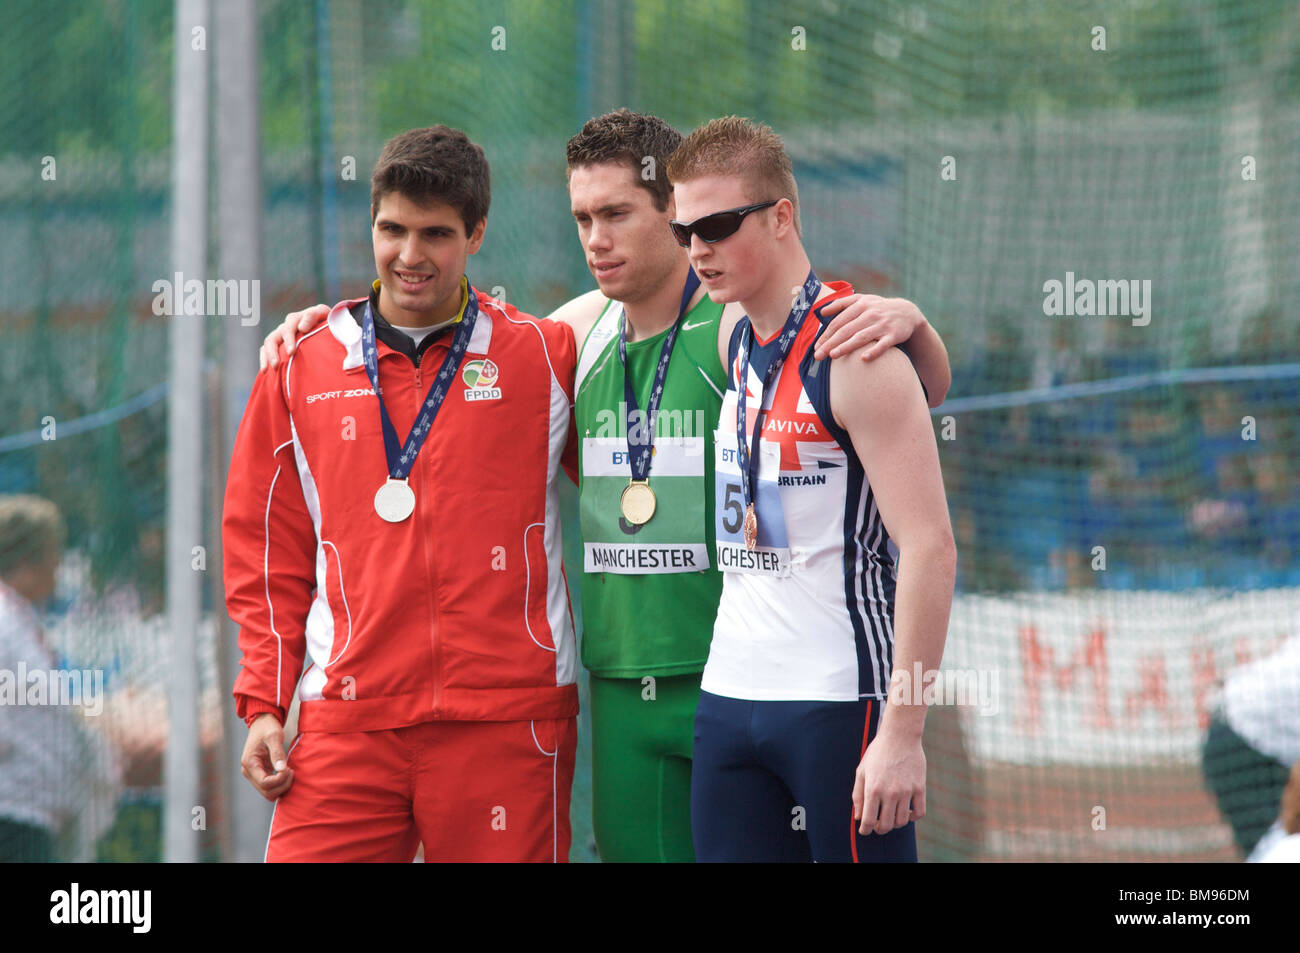 gold, silver and bronze medallists at the paralympic world cup held in manchester 2010 - Stock Image